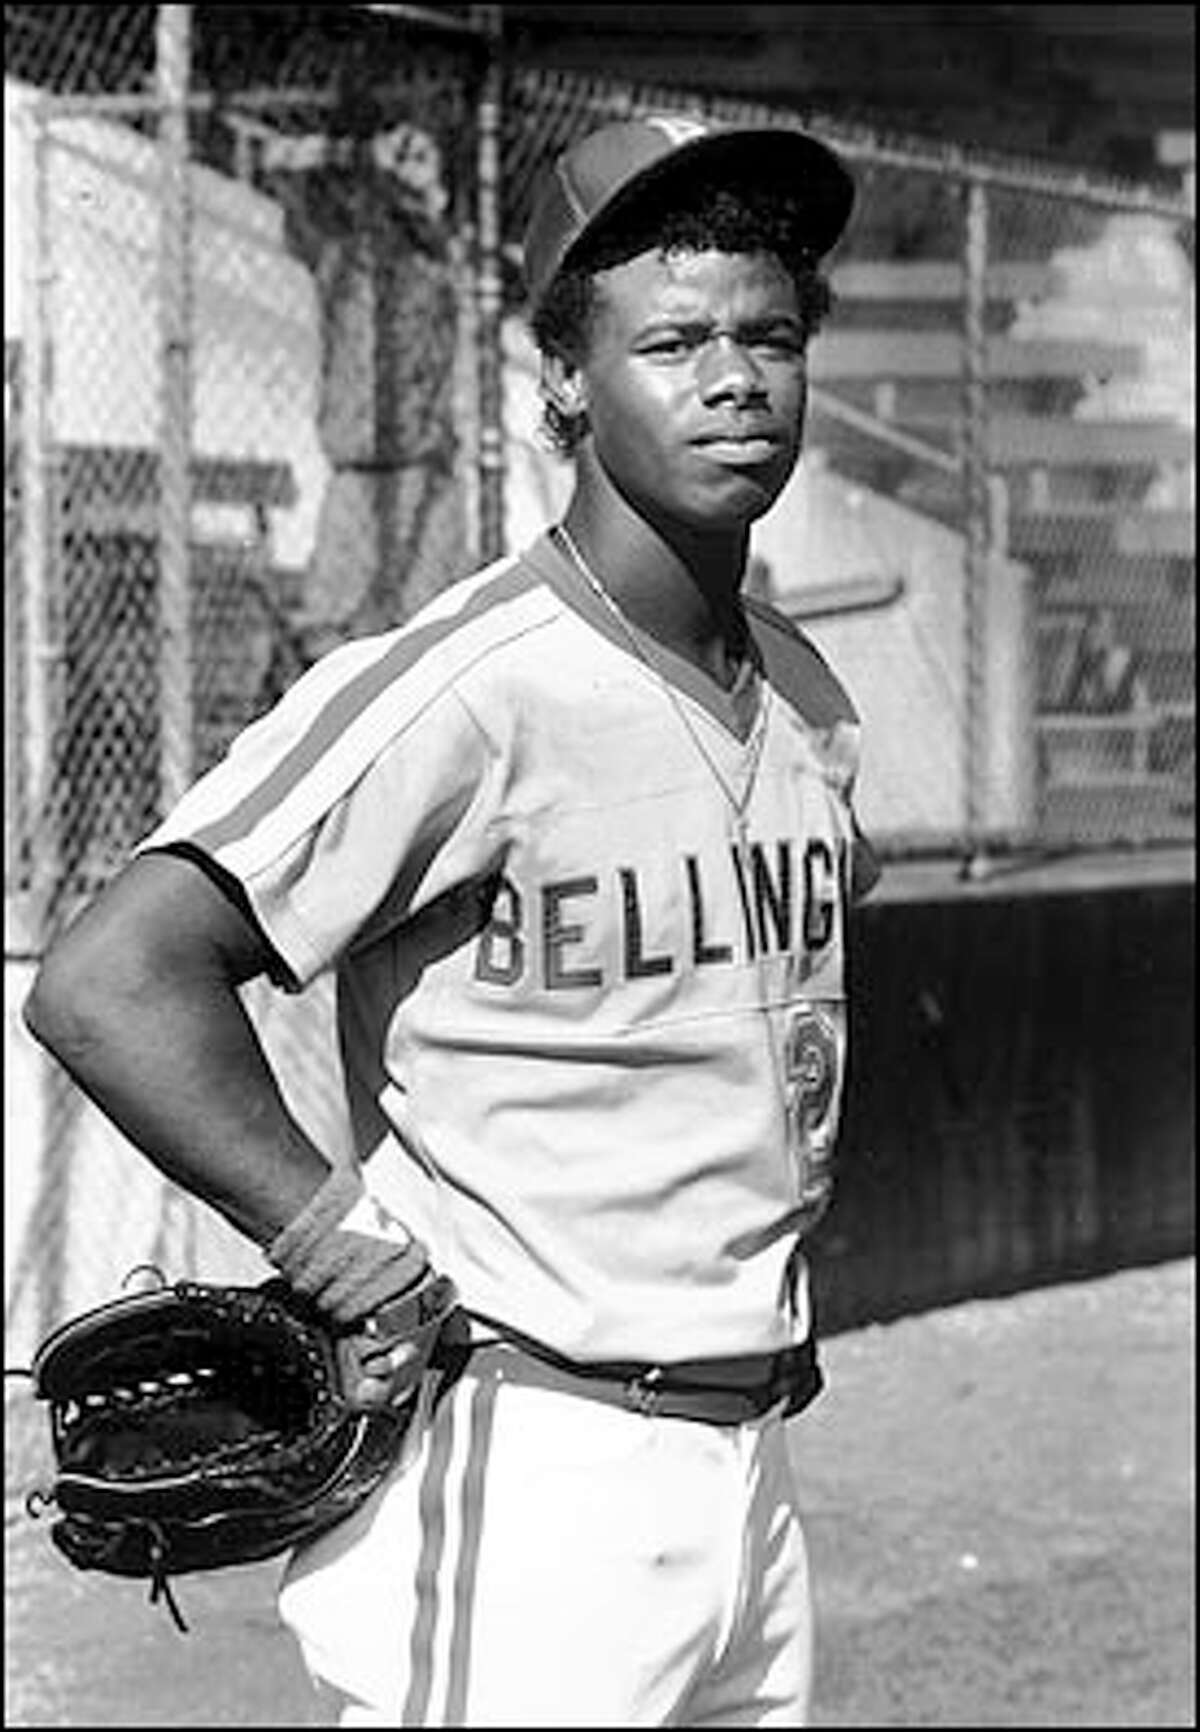 Griffey in the uniform of the Class A Bellingham Mariners, with which he started his professional career.